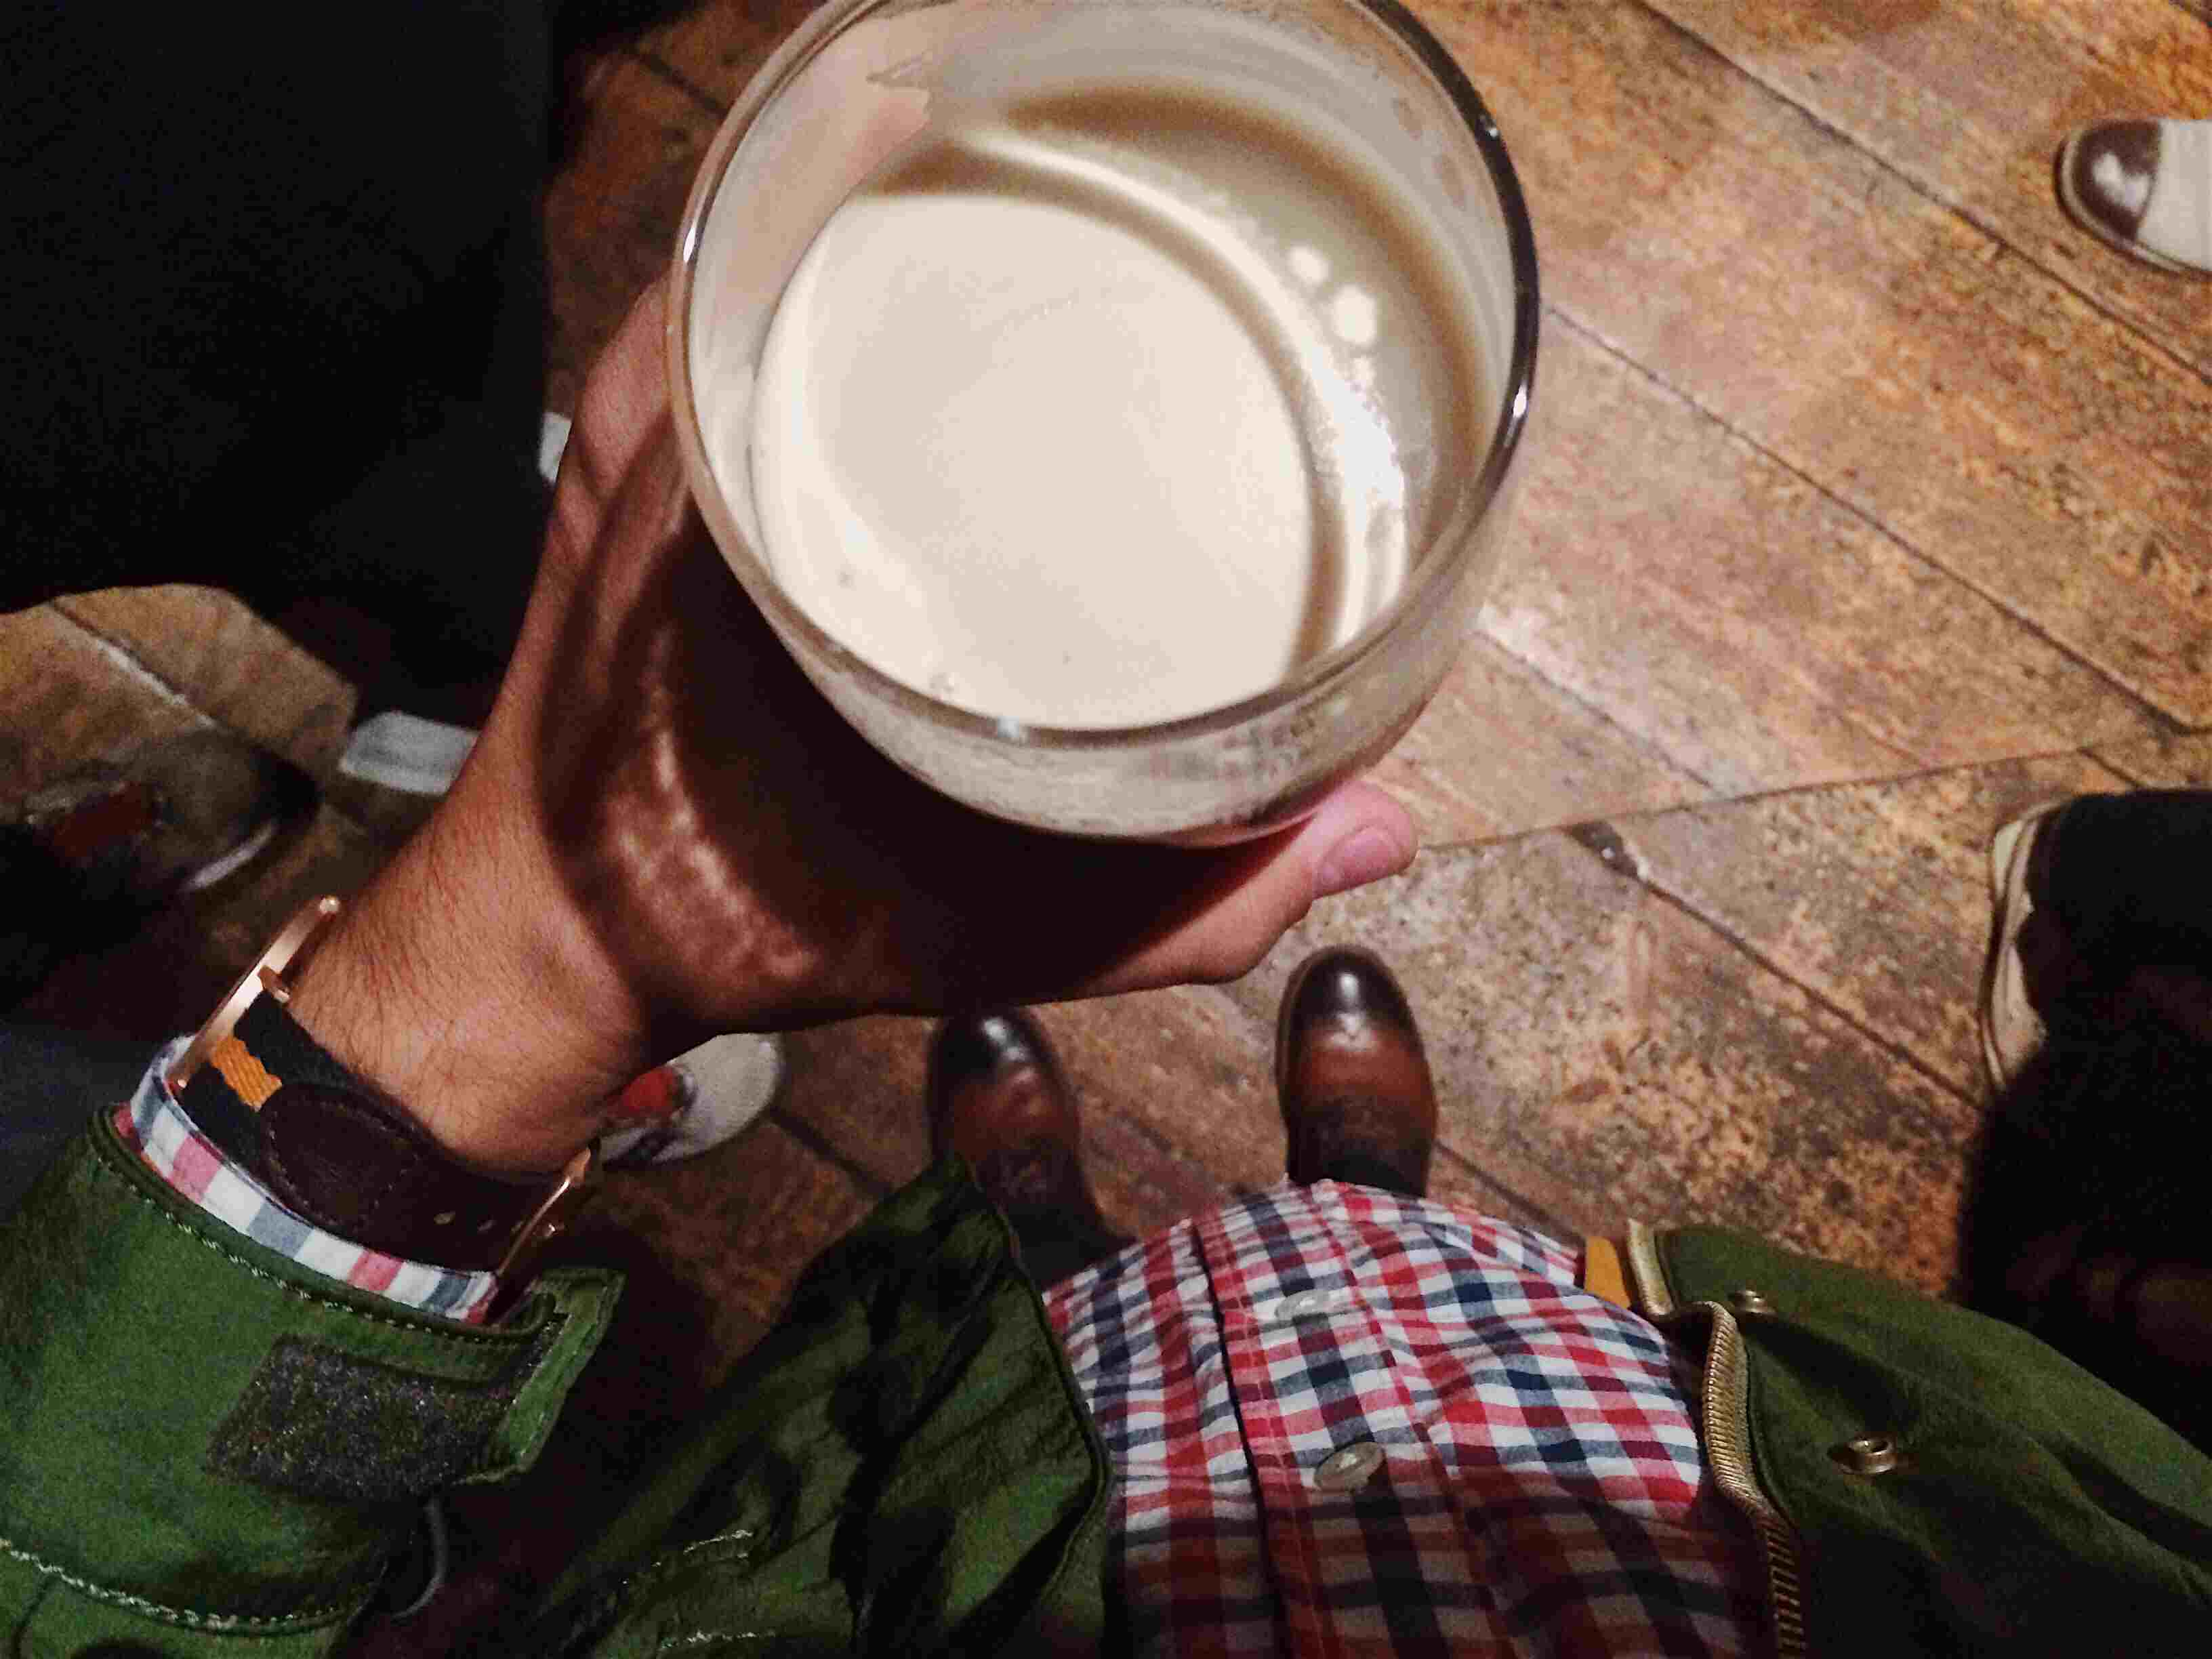 Drinking beer in a pub from personal perspective